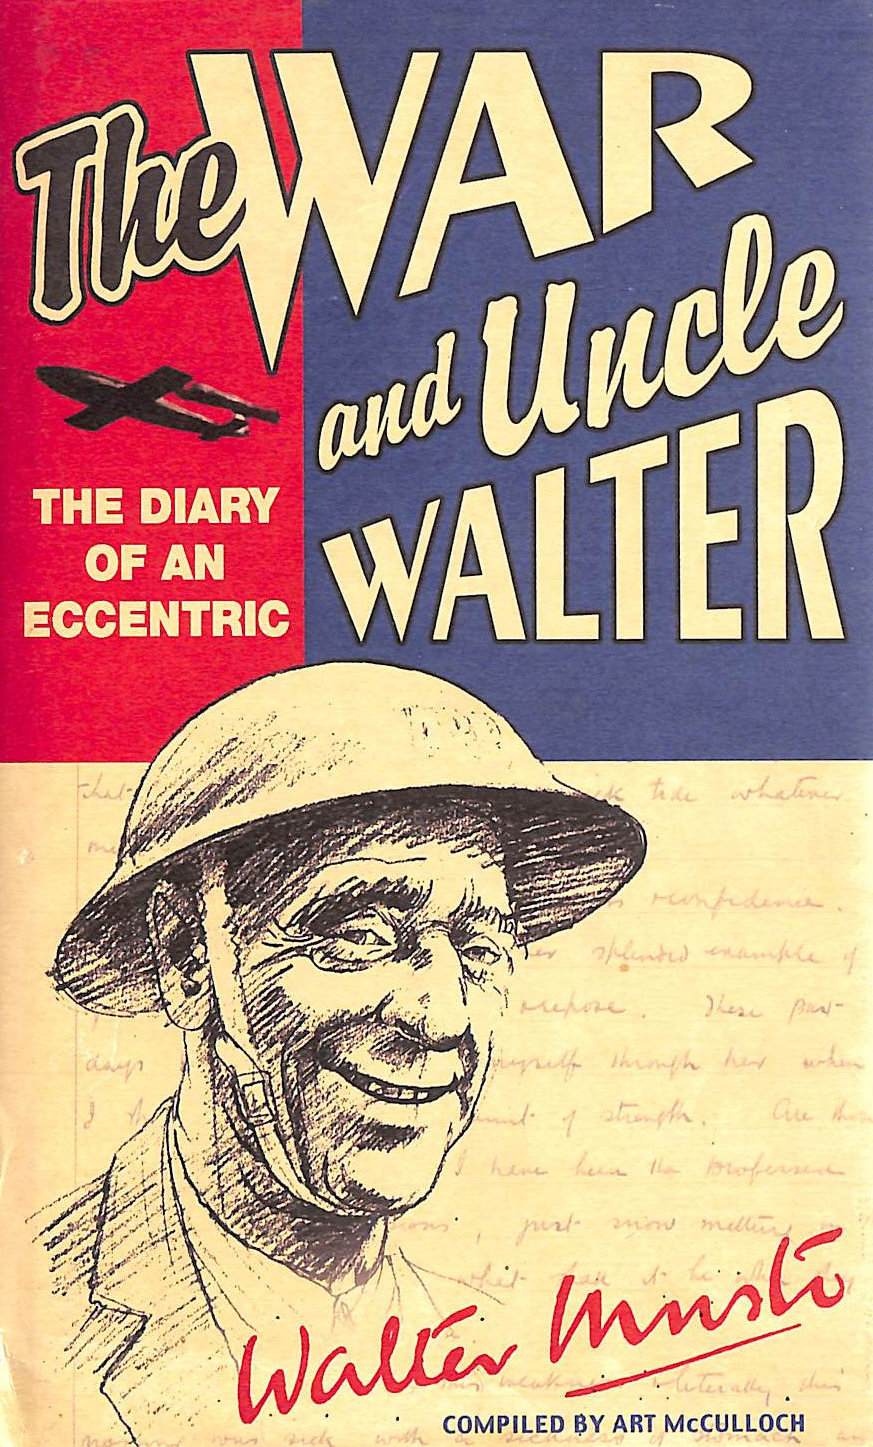 Image for THE WAR AND UNCLE WALTER. DIARY OF AN ECCENTRIC WALTER MUSTO